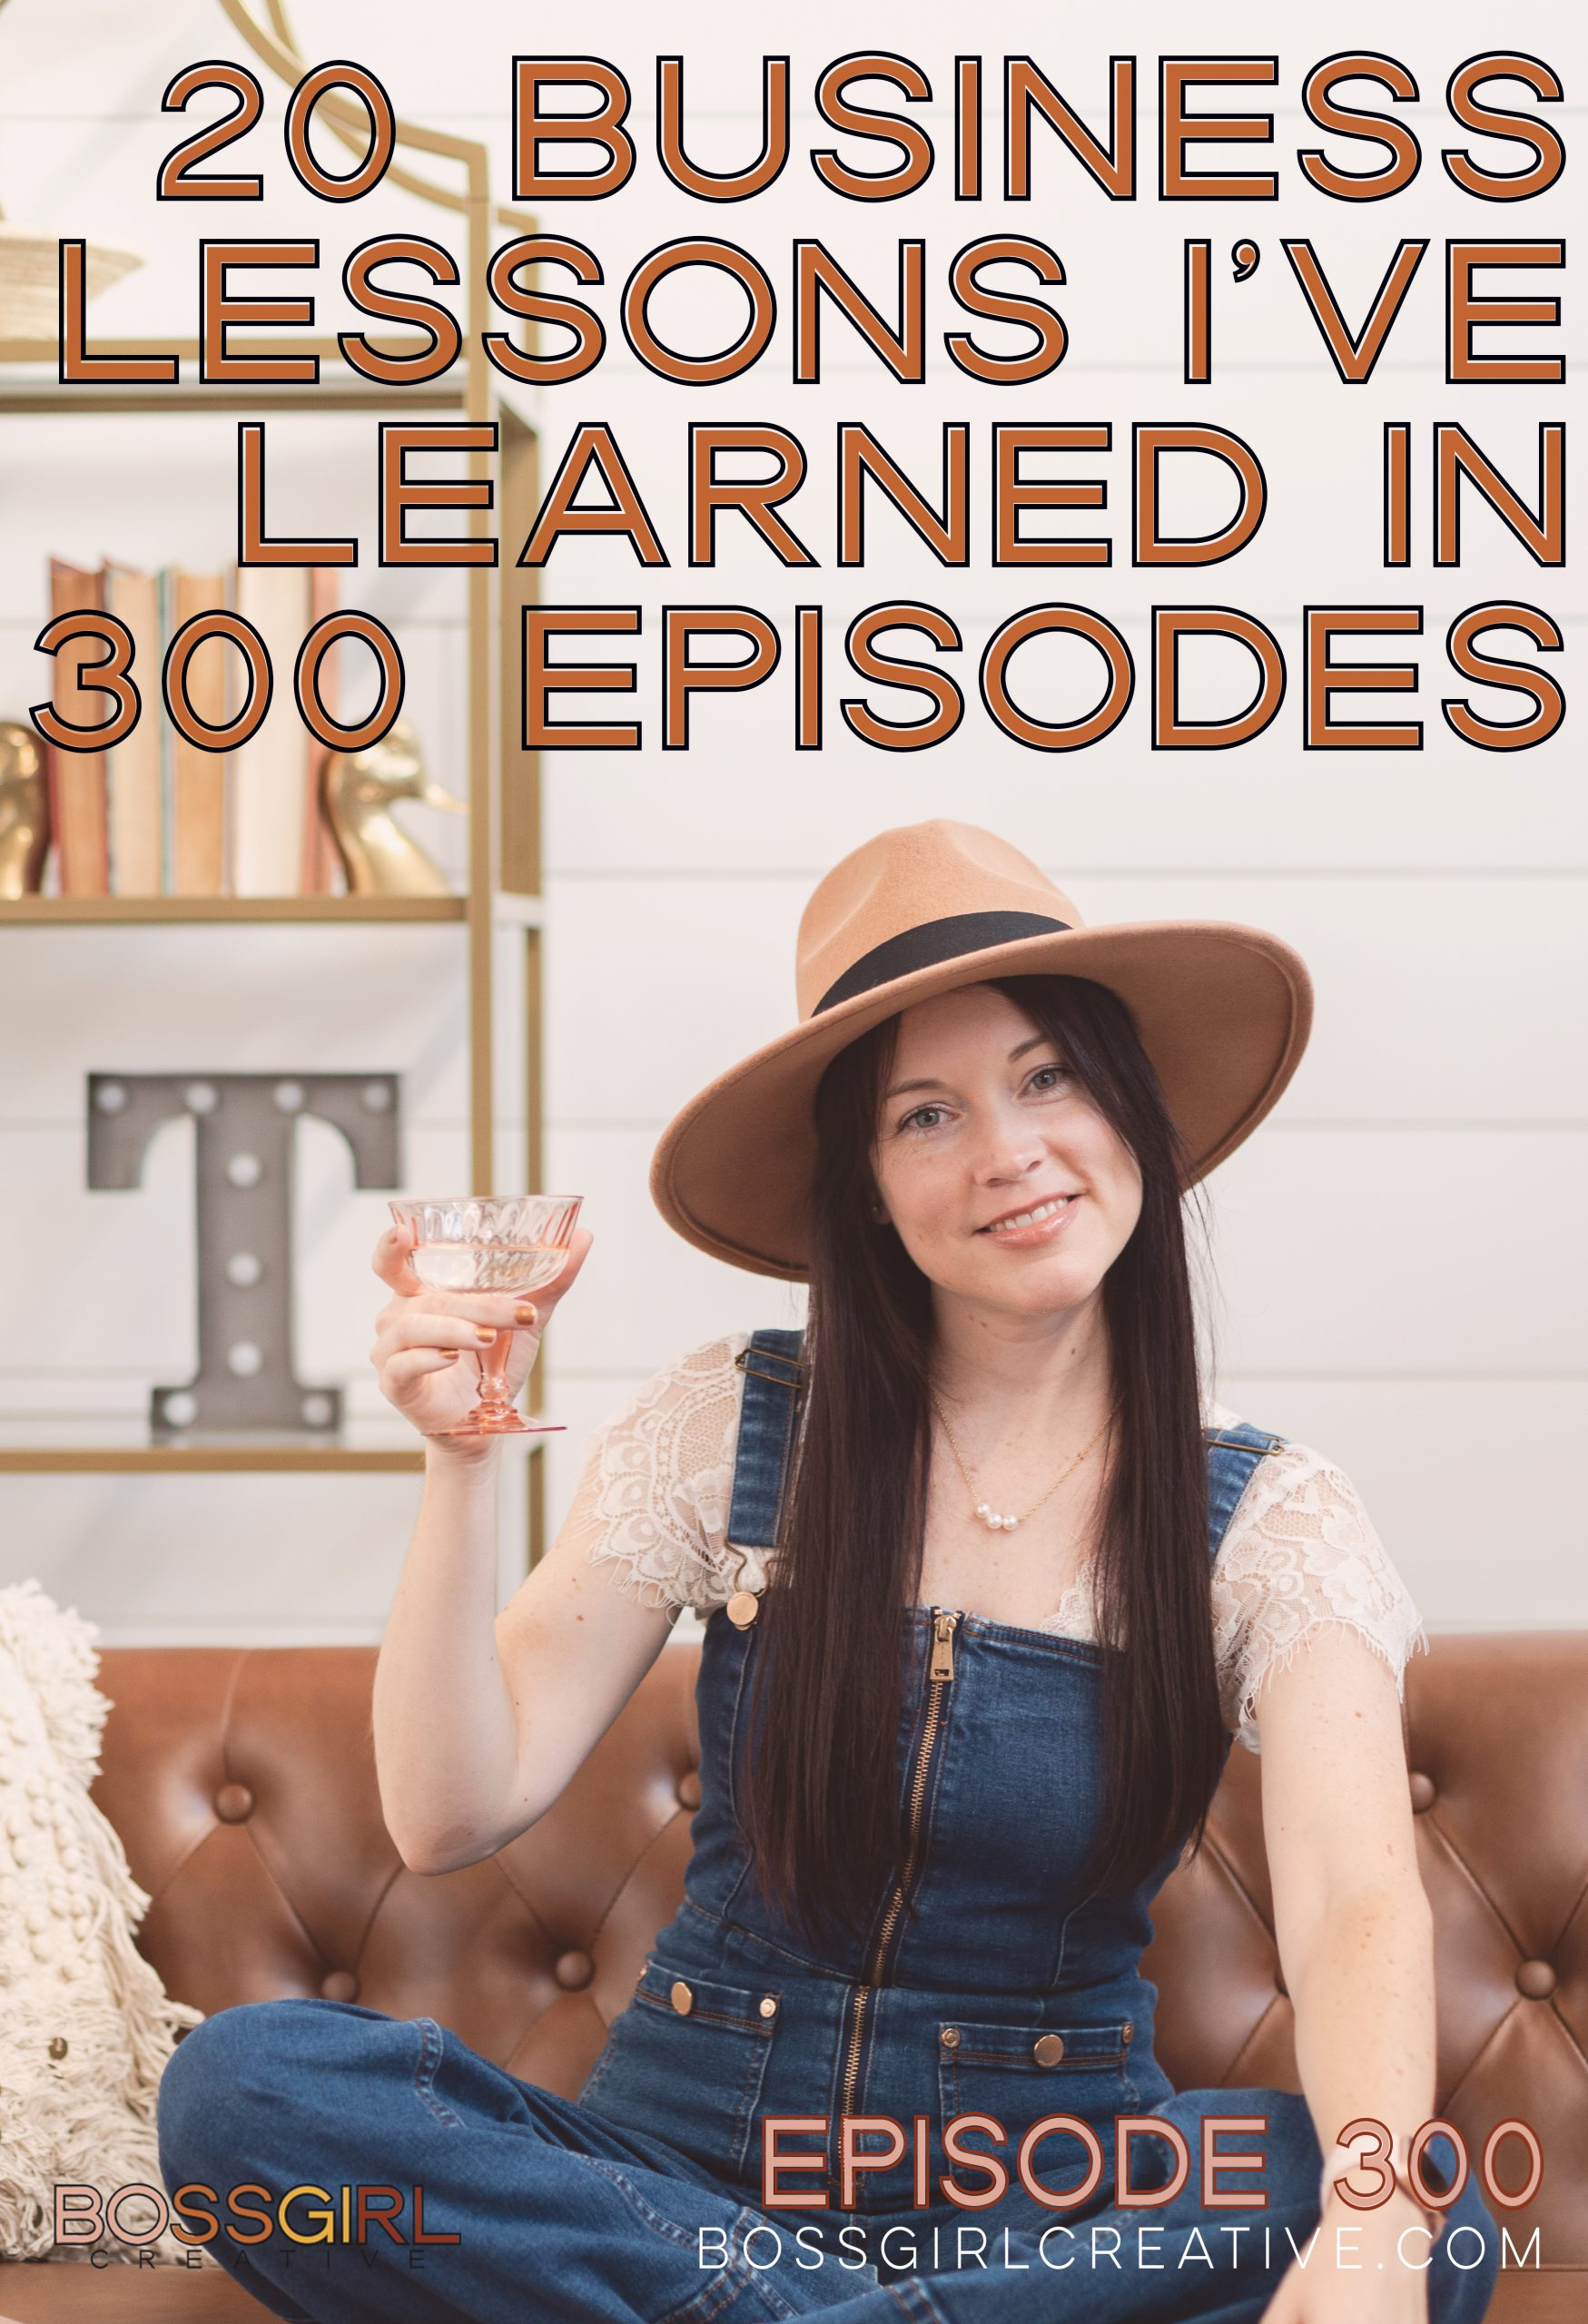 20 BUSINESS LESSONS I'VE LEARNED IN 300 EPISODES